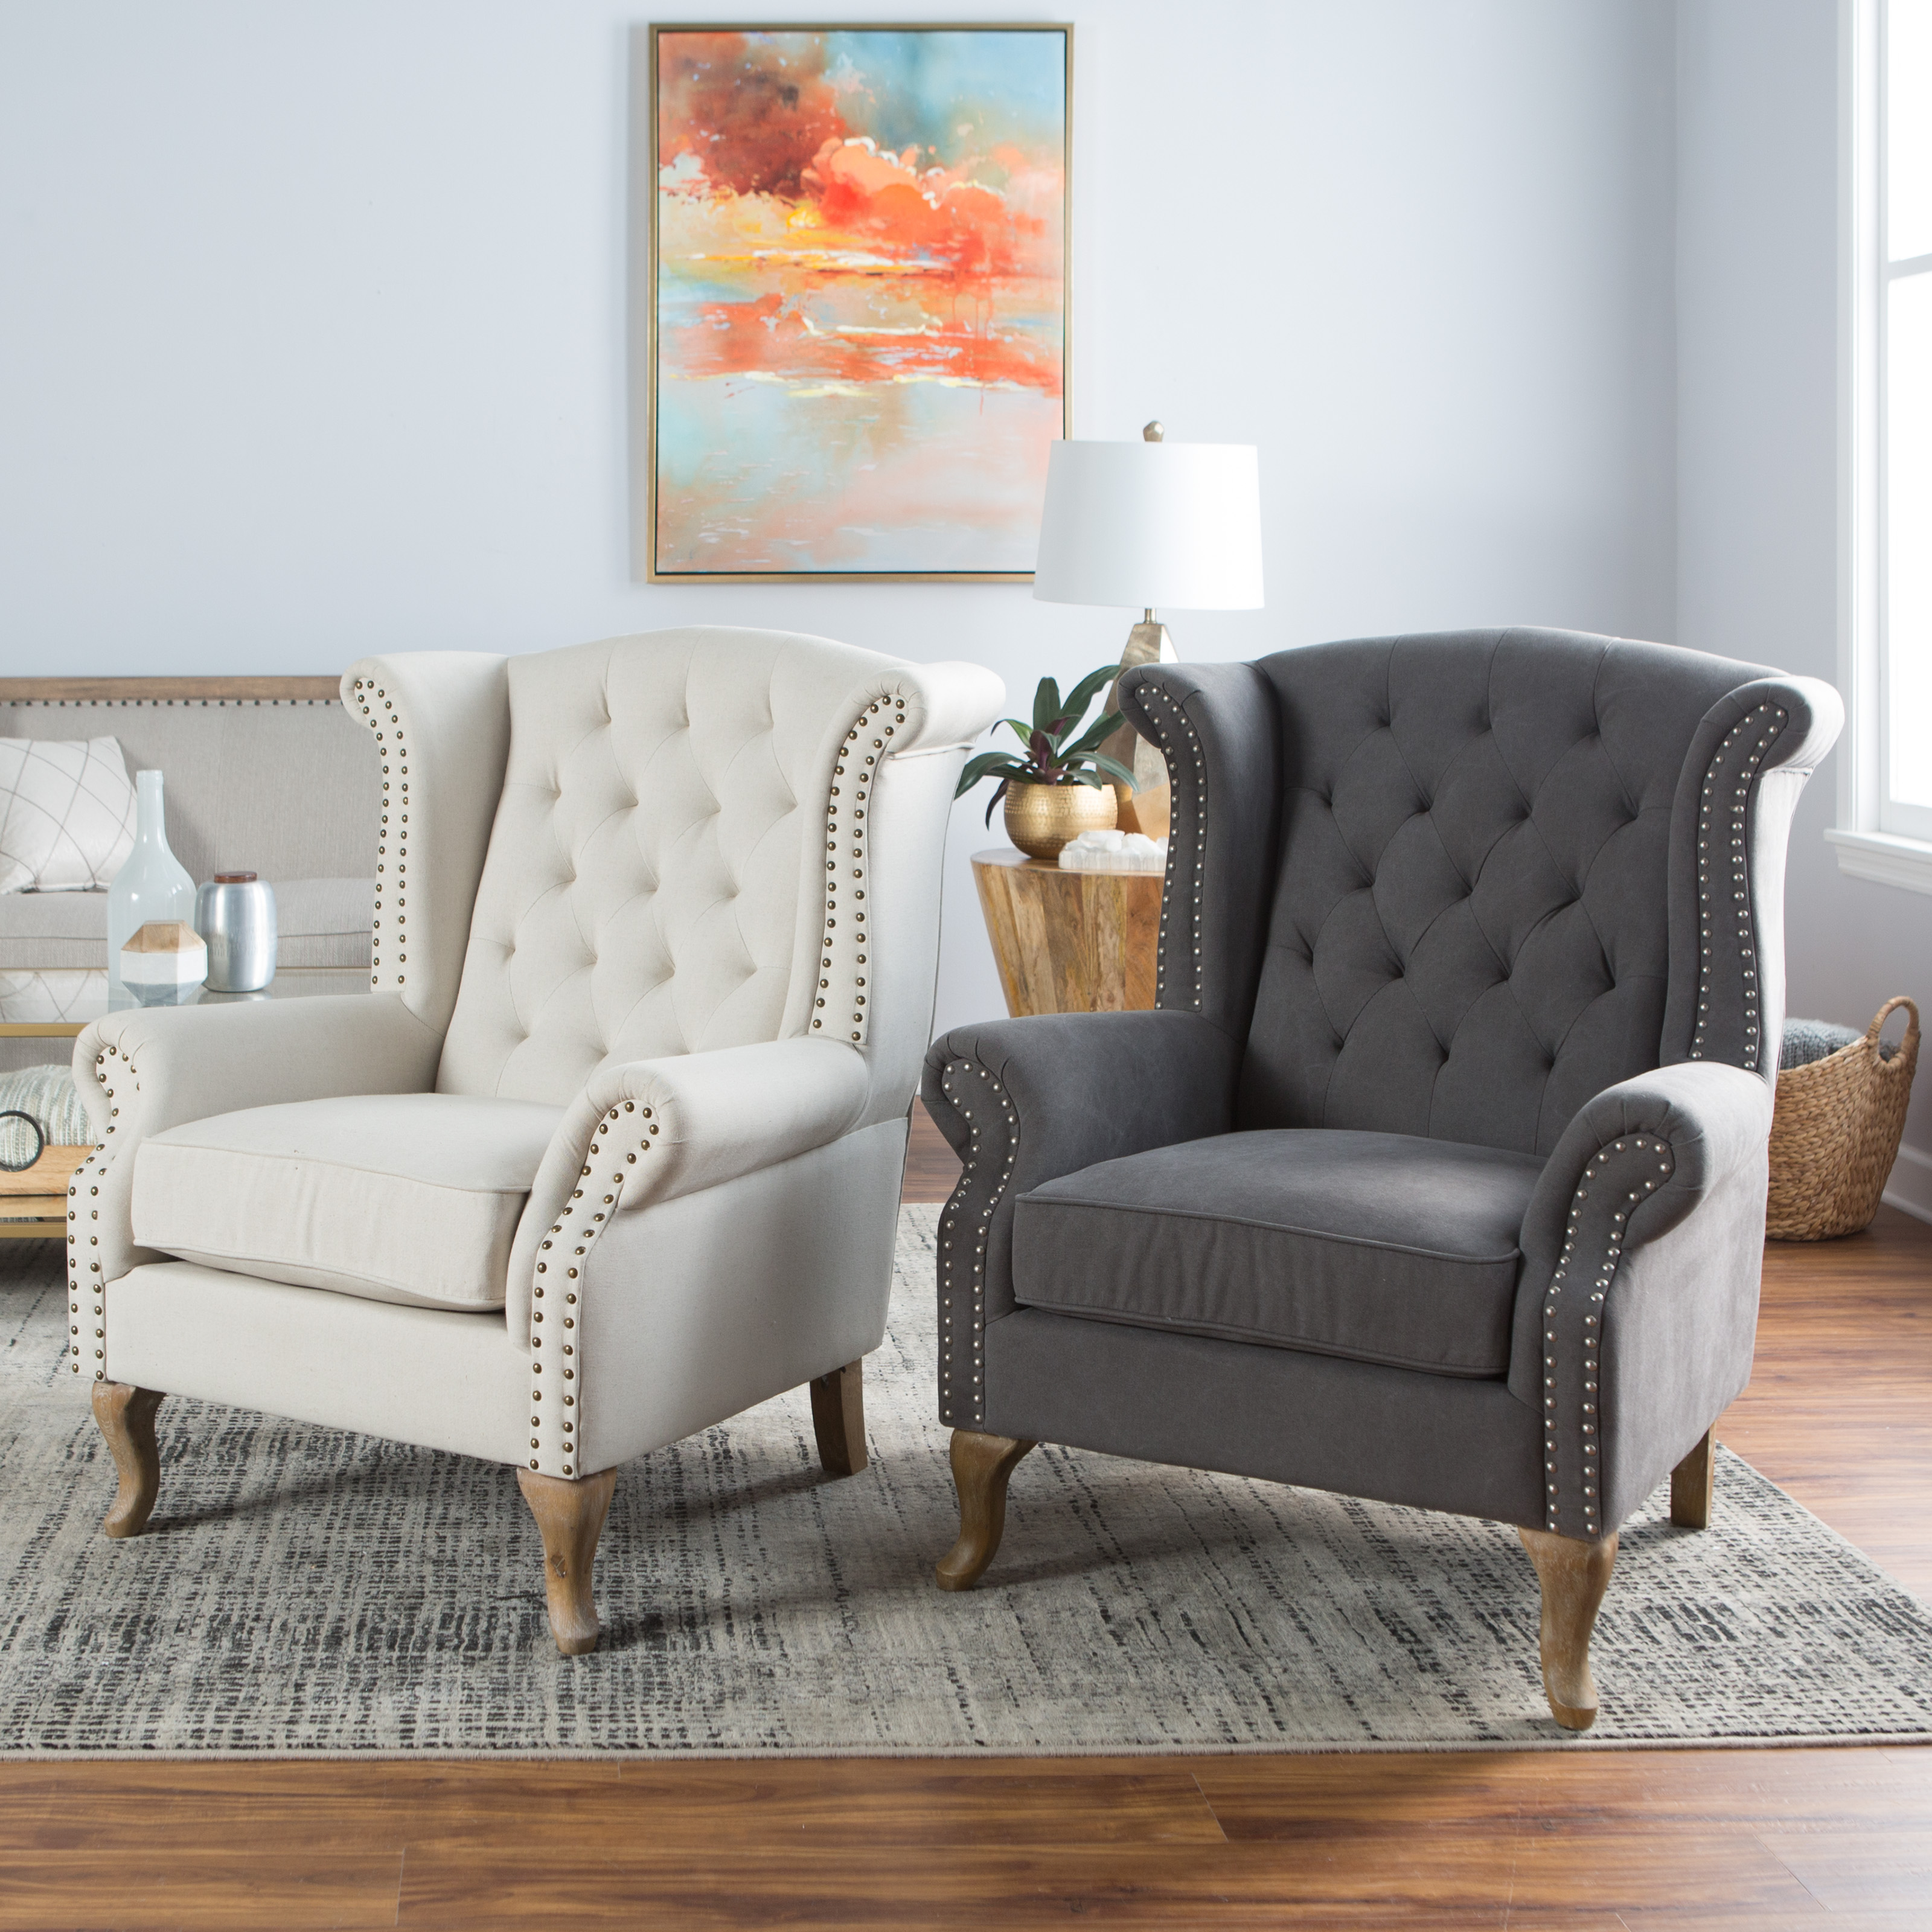 Sitting Room Chairs 5 Designs Of Accent Chairs For Your Living Room Fif Blog